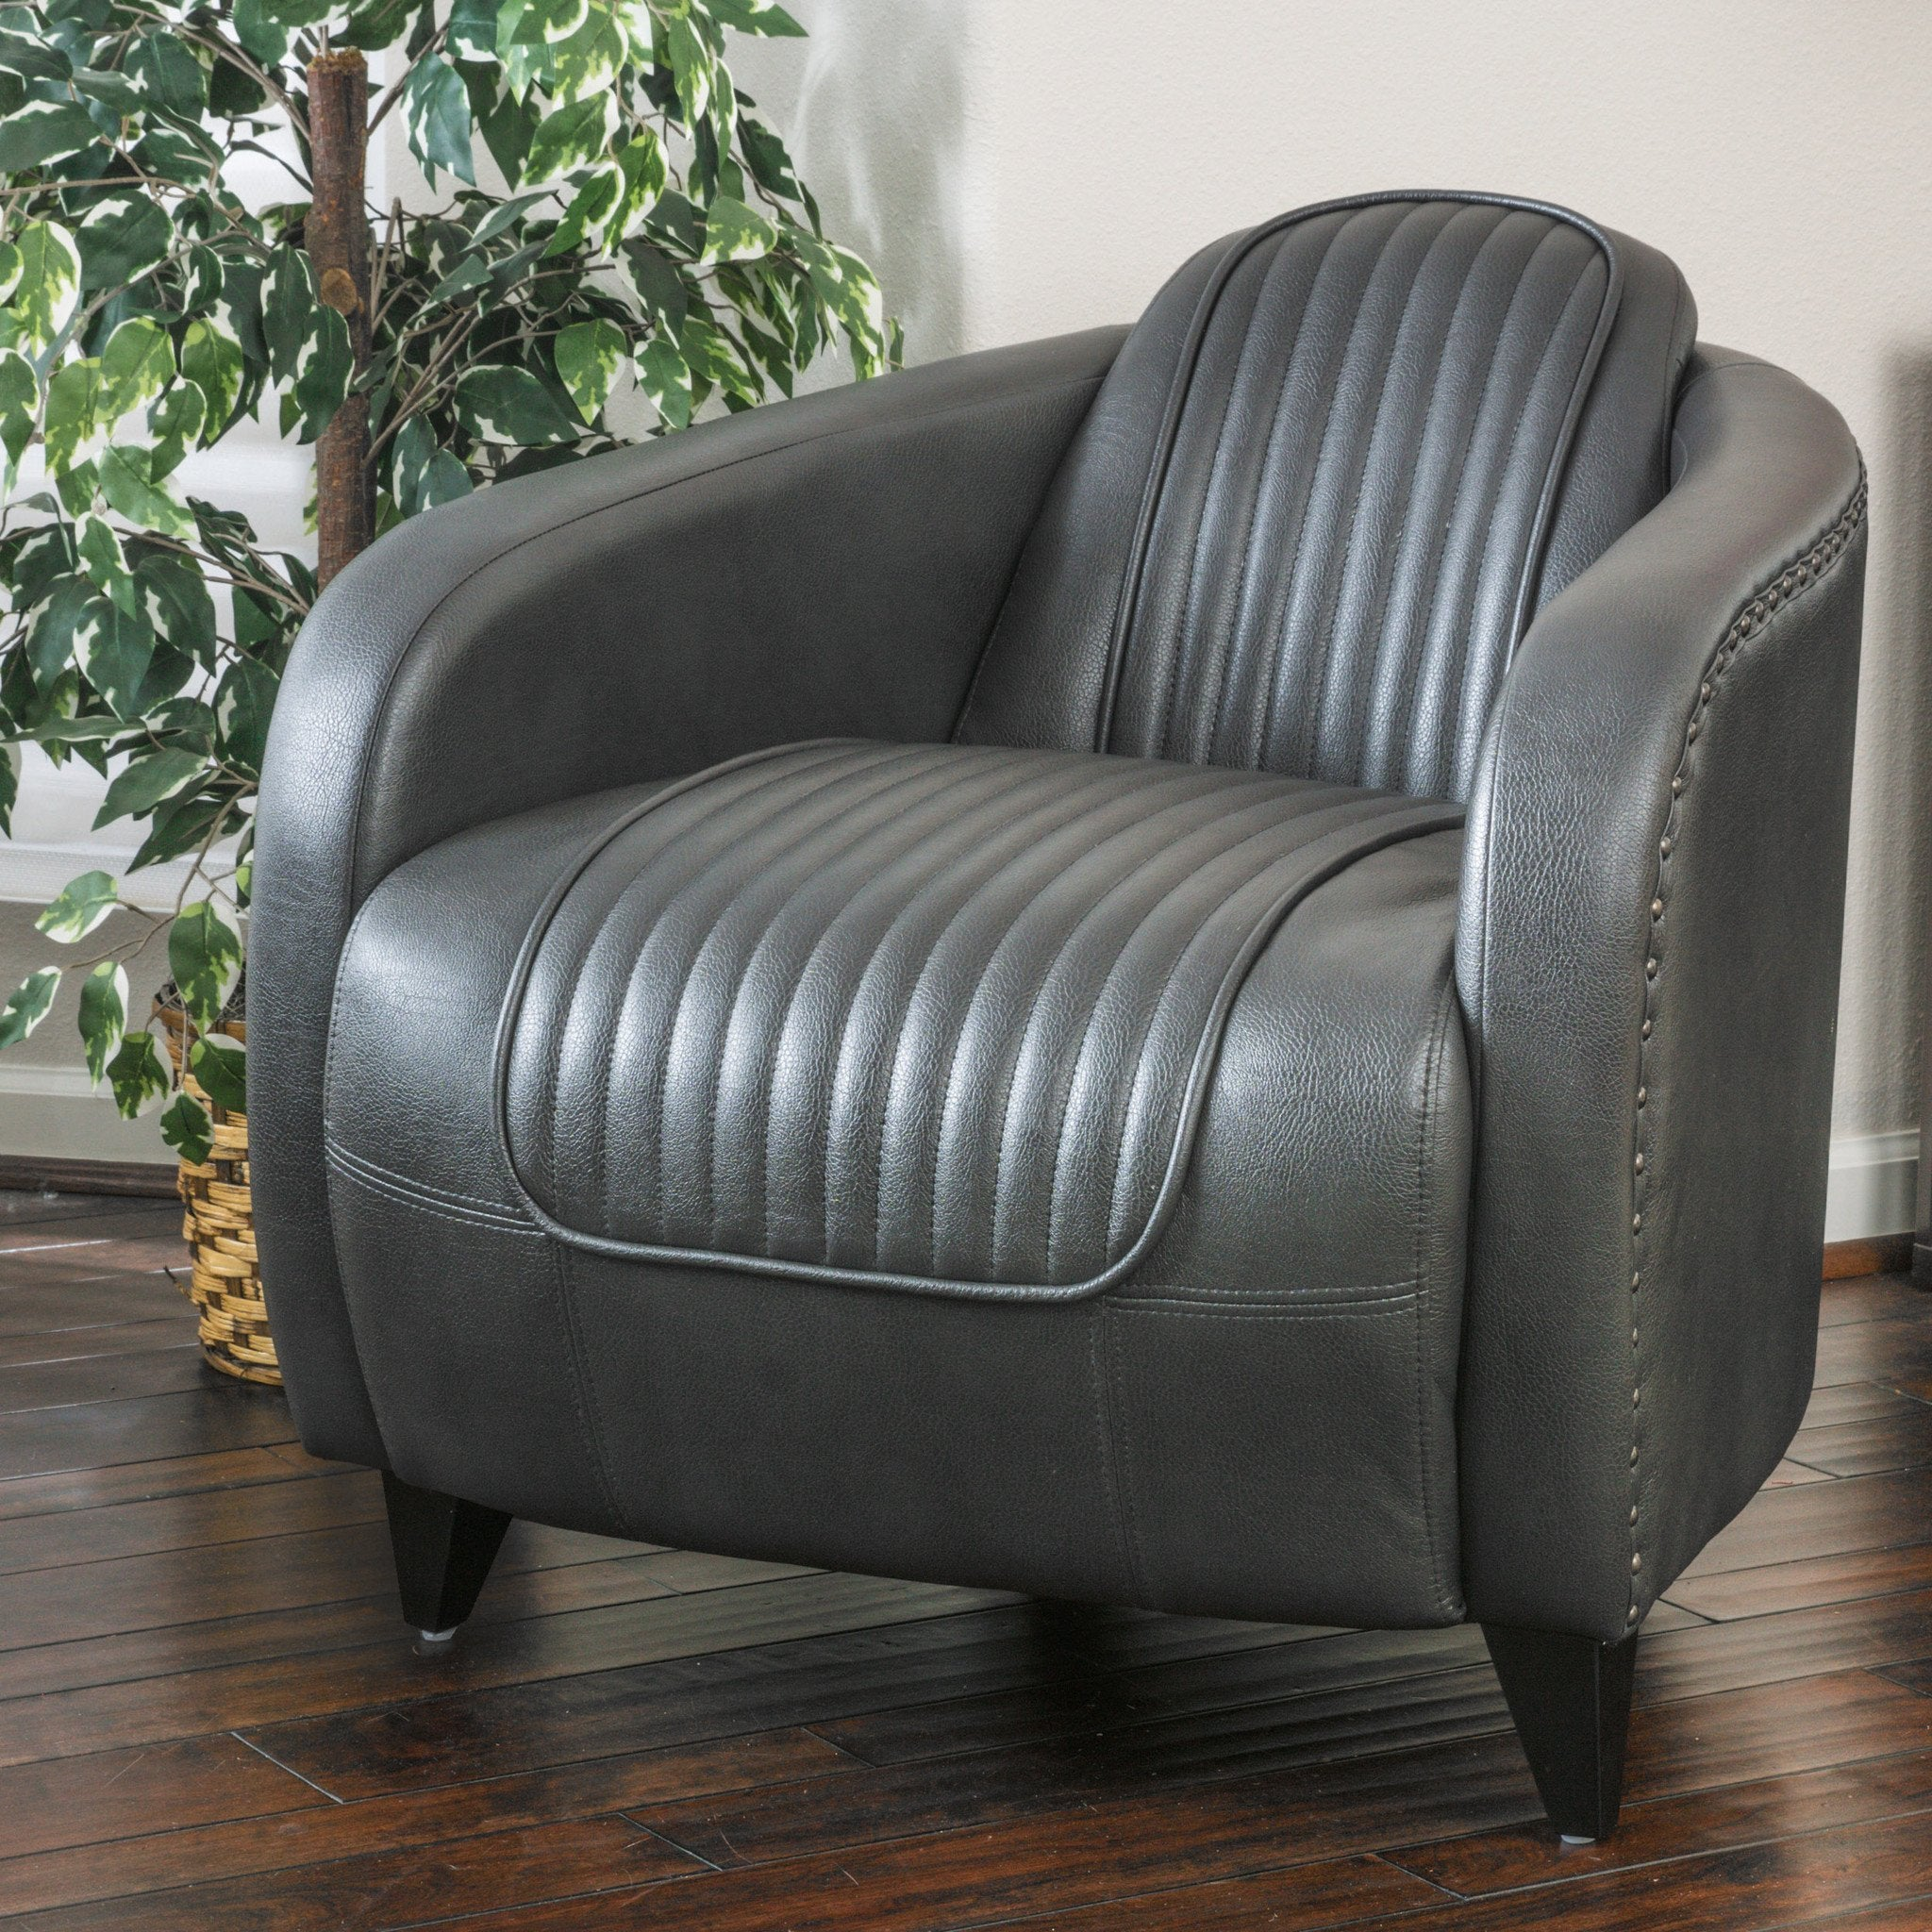 Palmer Roman Faux Leather Club Chair With Nailheads